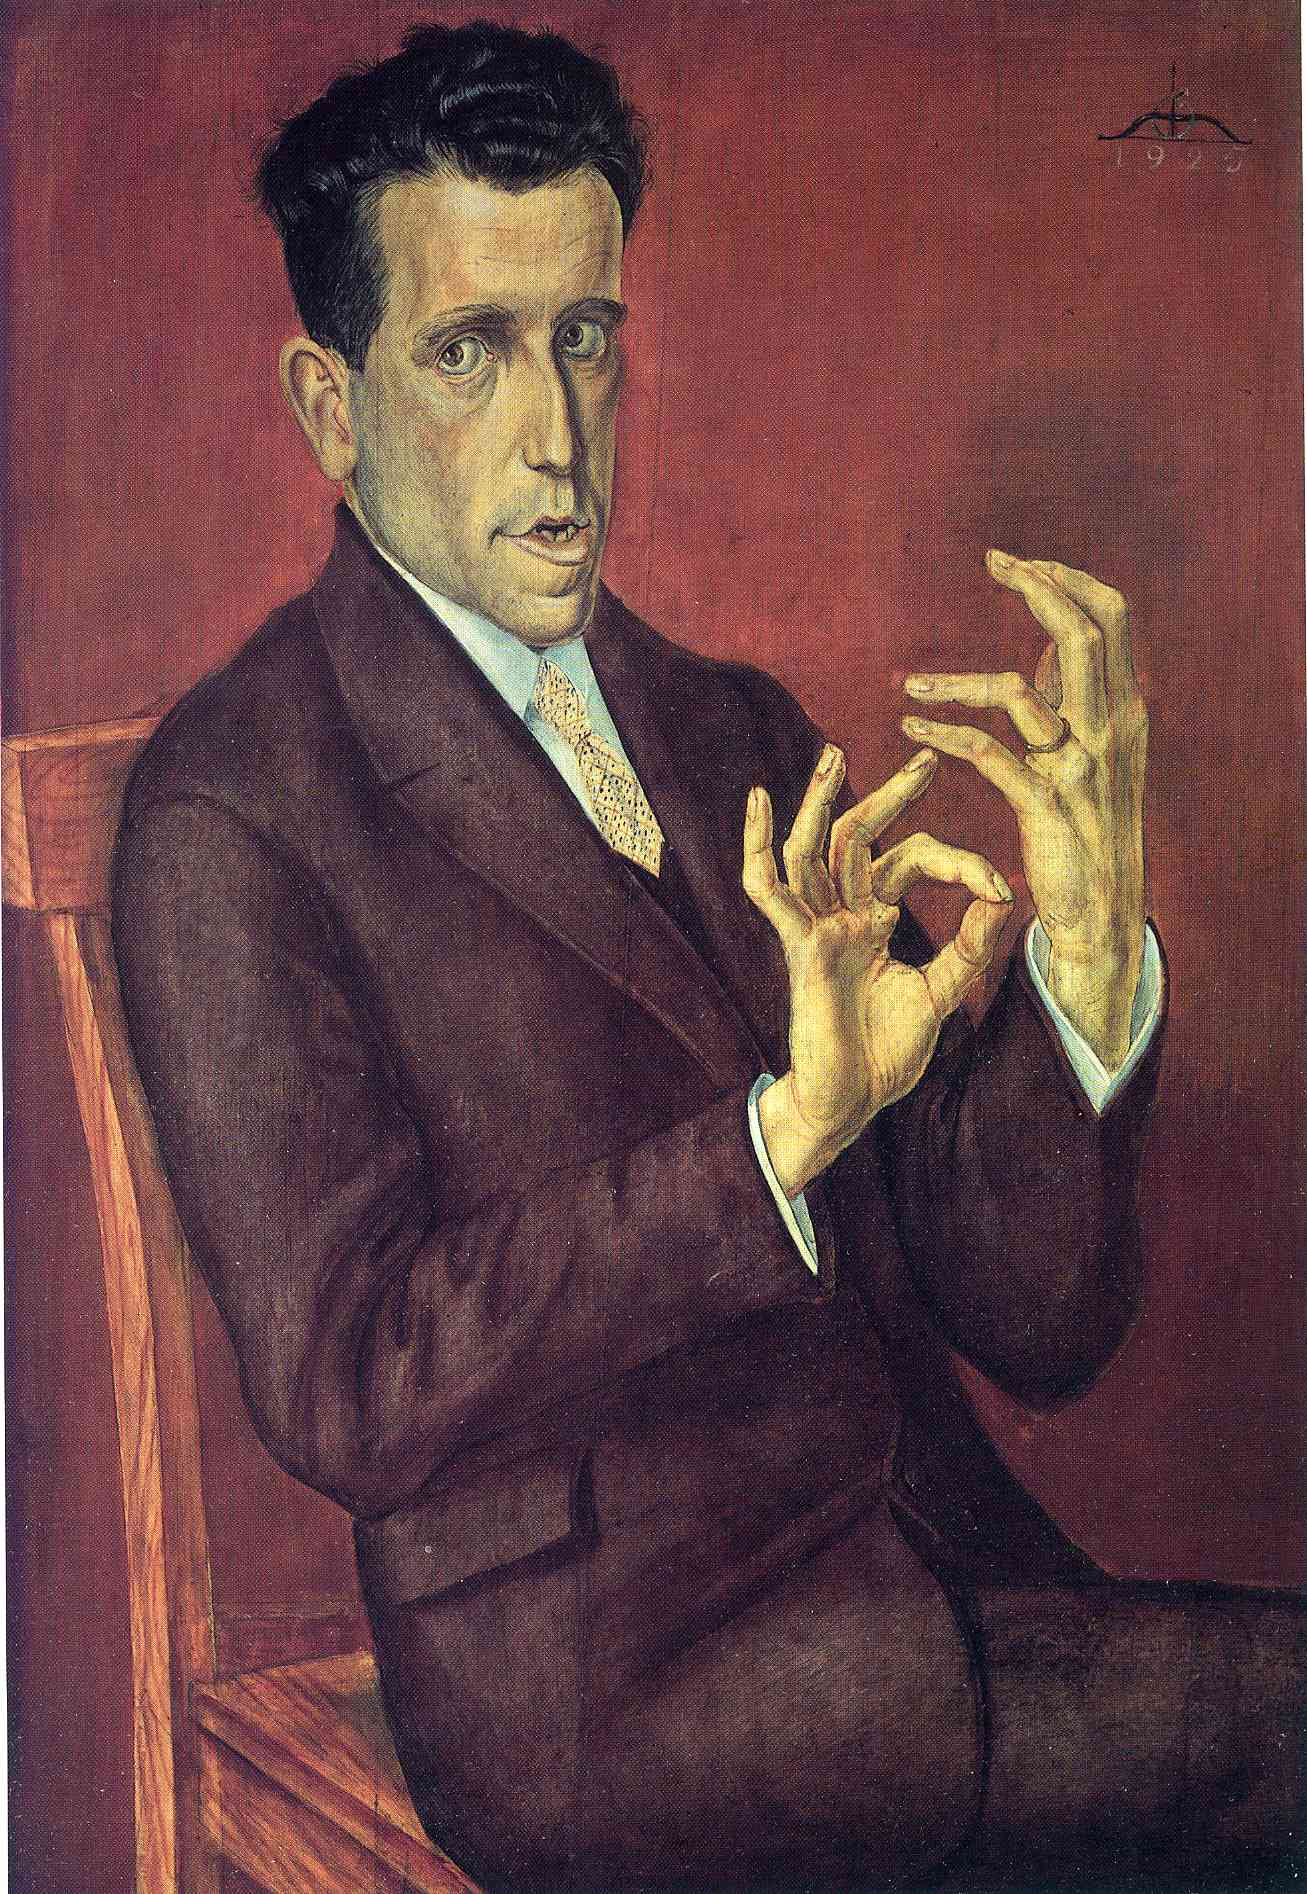 otto dix Art of the 20th century  art styles in 20th century - art map  otto dix otto dix (b untermhaus, nr gera, 2 dec 1891 d singen, 25 july 1969)german painter, printmaker and watercolourist.